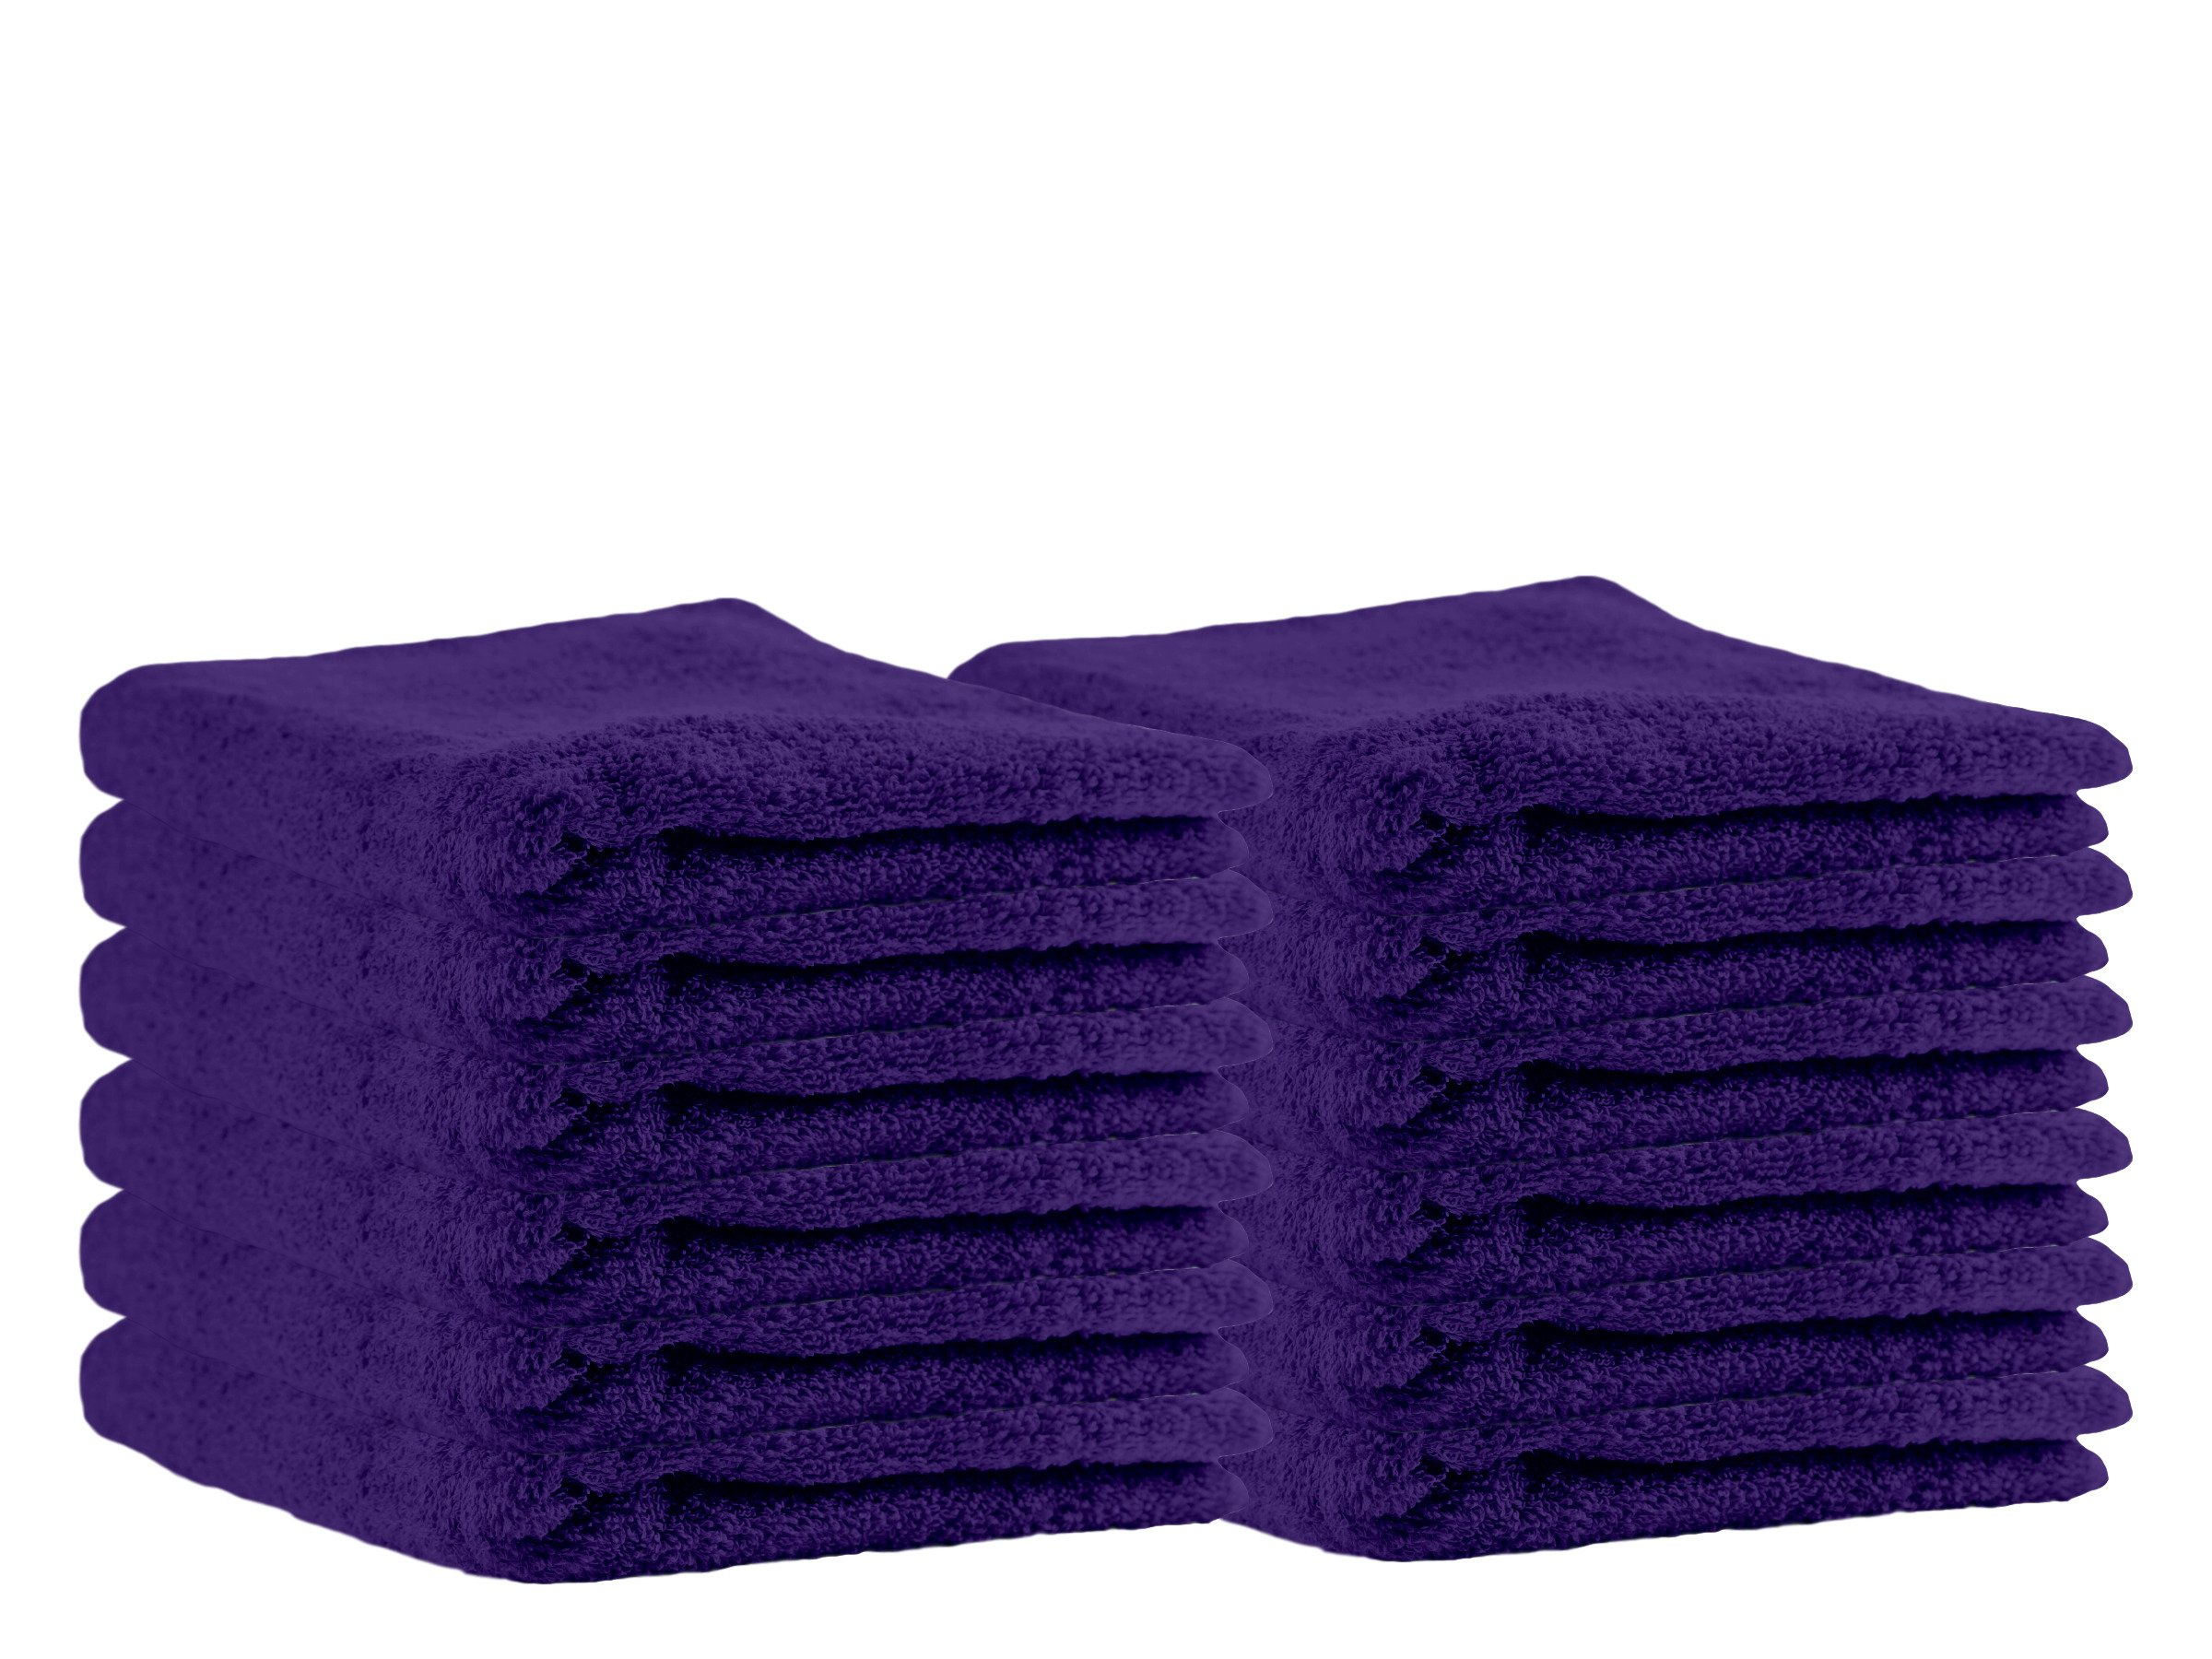 Puffy Cotton Luxury Washcloth Towel Set (12 Pack, 12x12 Inches) Multi-Purpose Extra Soft Fingertip Towels, Super Absorbent Face Cloths, Machine Washable, Sport and Workout Towels (Purple) by Puffy Cotton